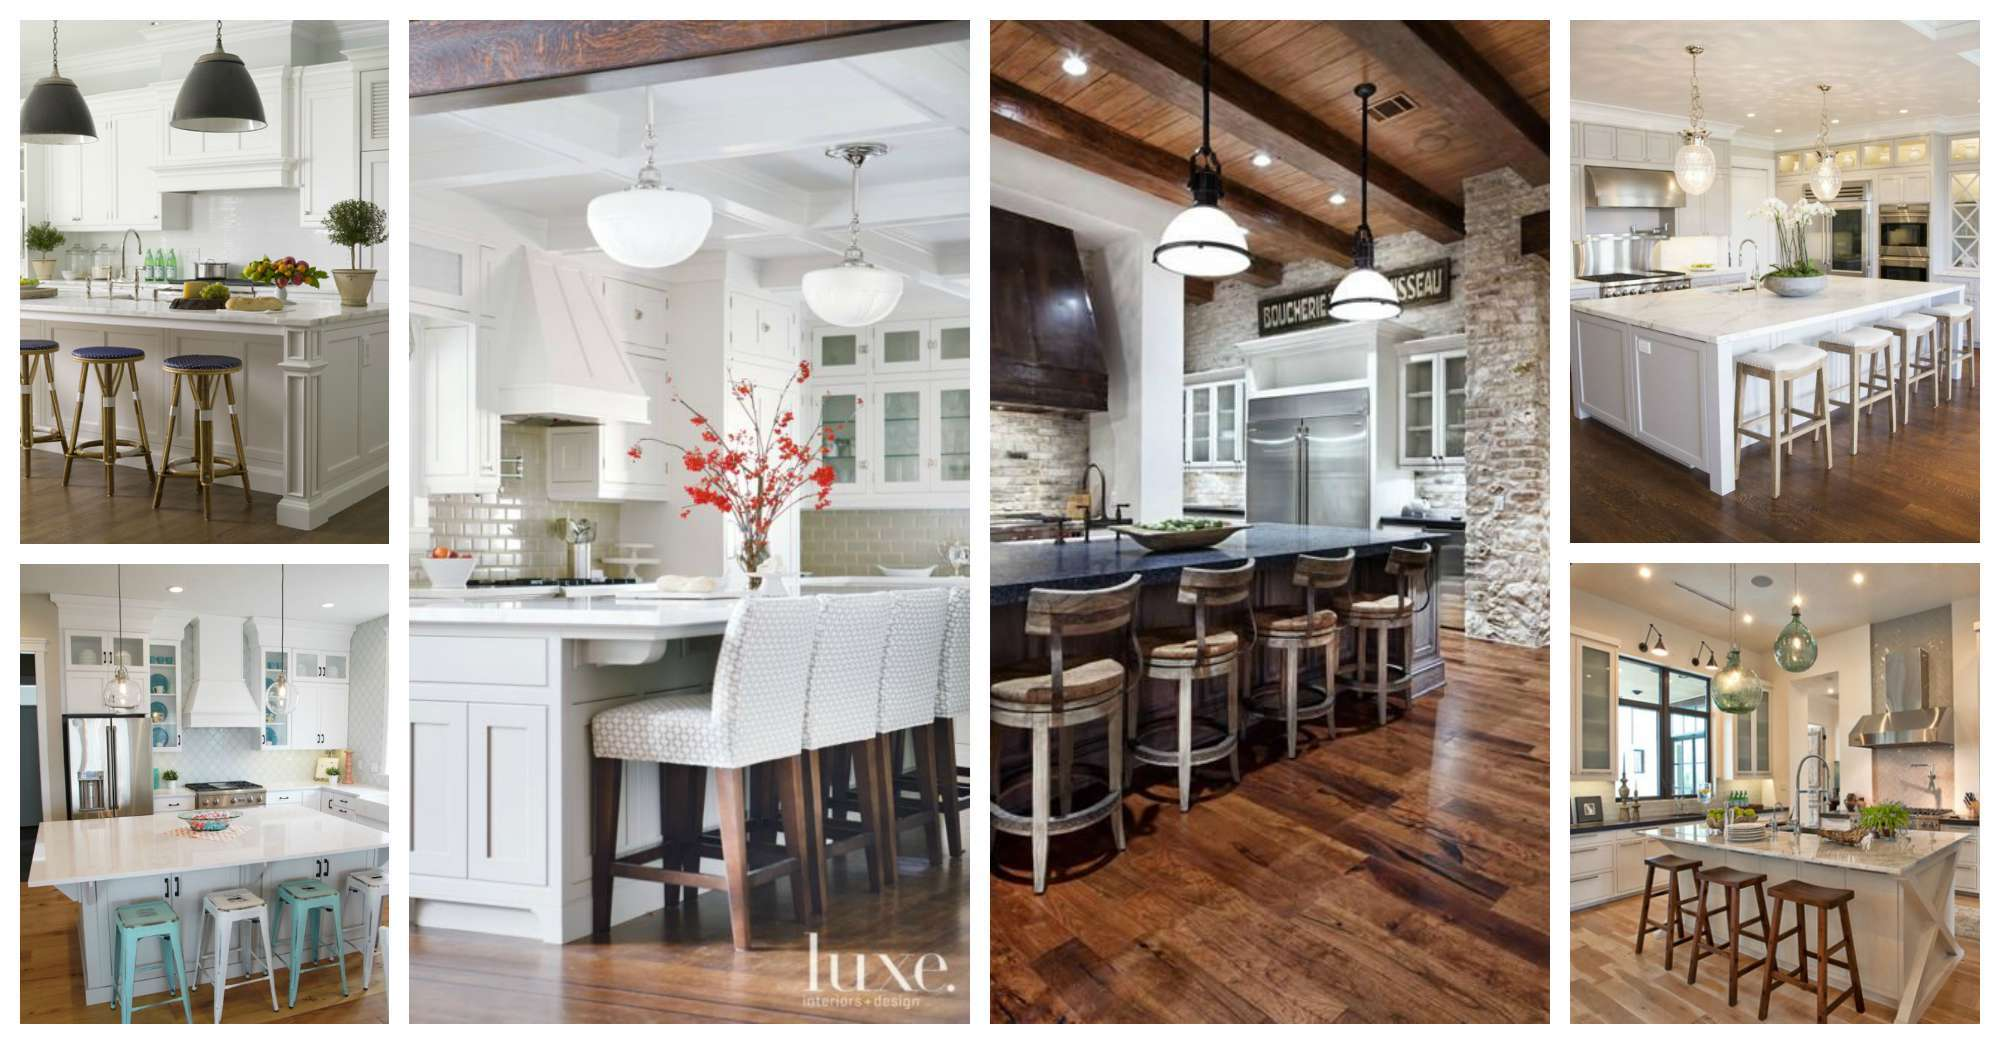 Amazing Kitchen Design Ideas with Bar Stools